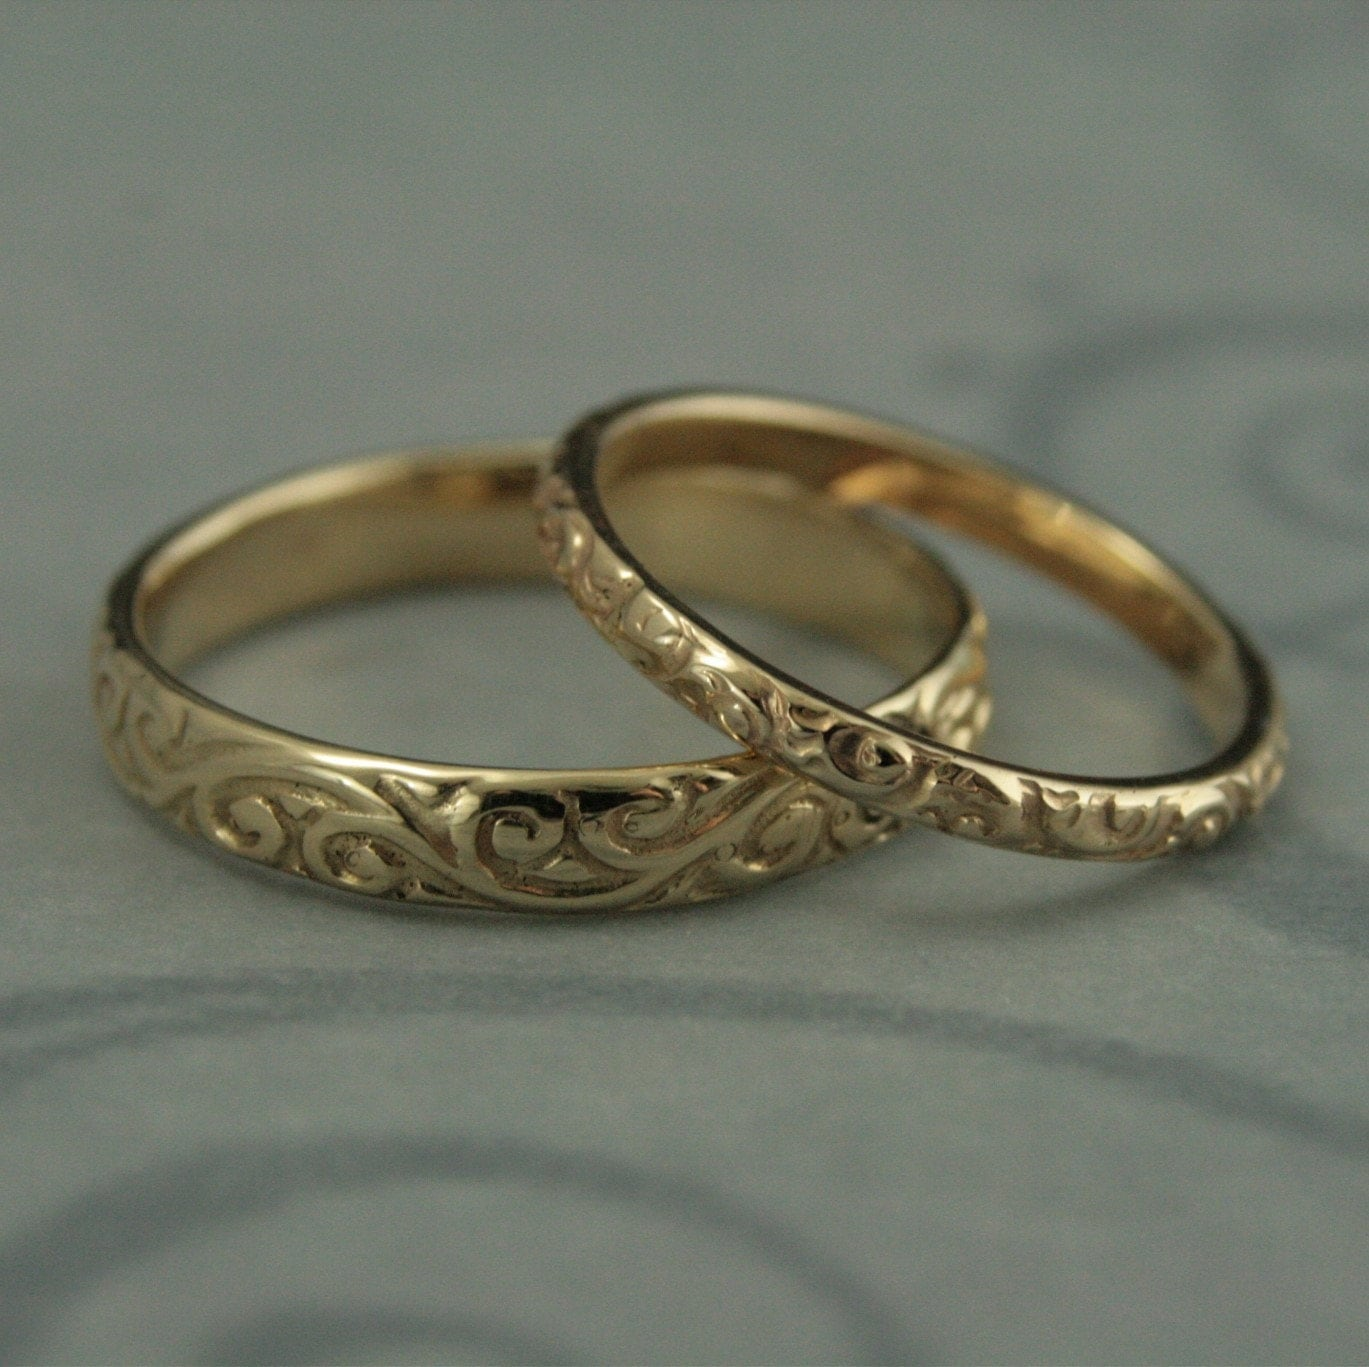 vintage style ring antique style wedding bands Patterned Wedding Band Set Vintage Style Wedding Rings His and Hers Set Antique Style Rings 14K Gold Rococo Flourish Set His and Hers Bands